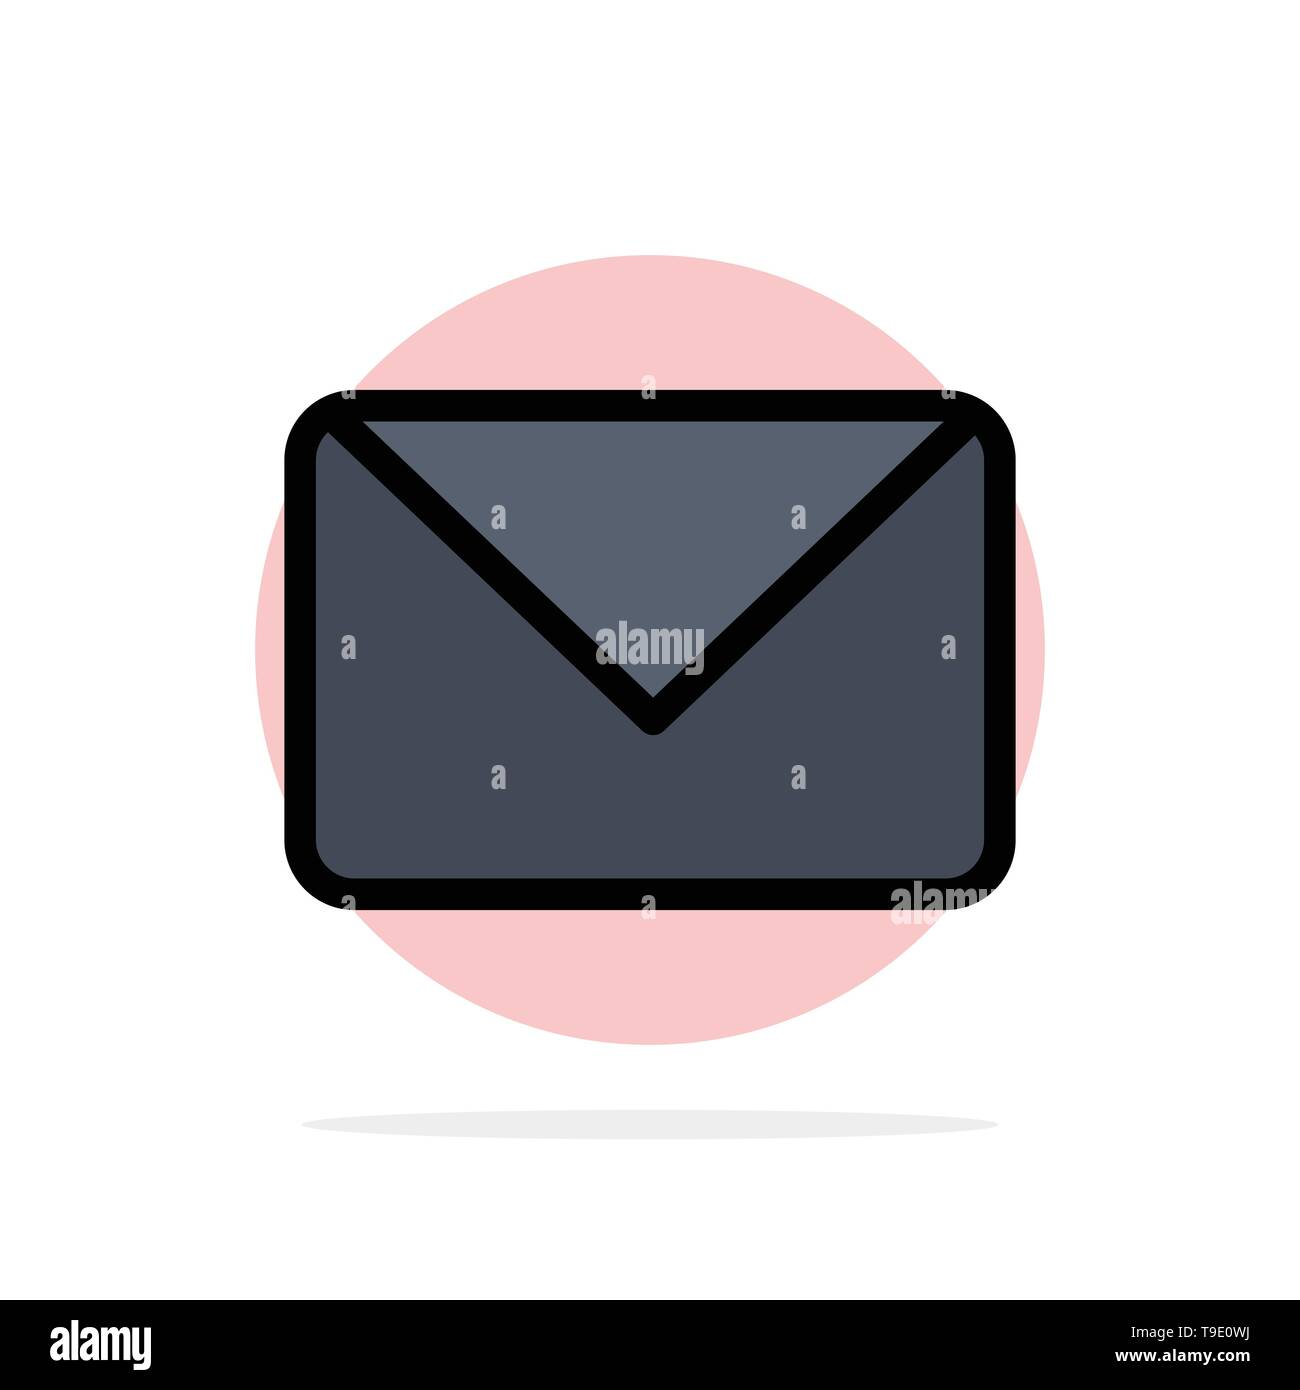 Twitter, Mail, Sms, Chat Abstract Circle Background Flat color Icon